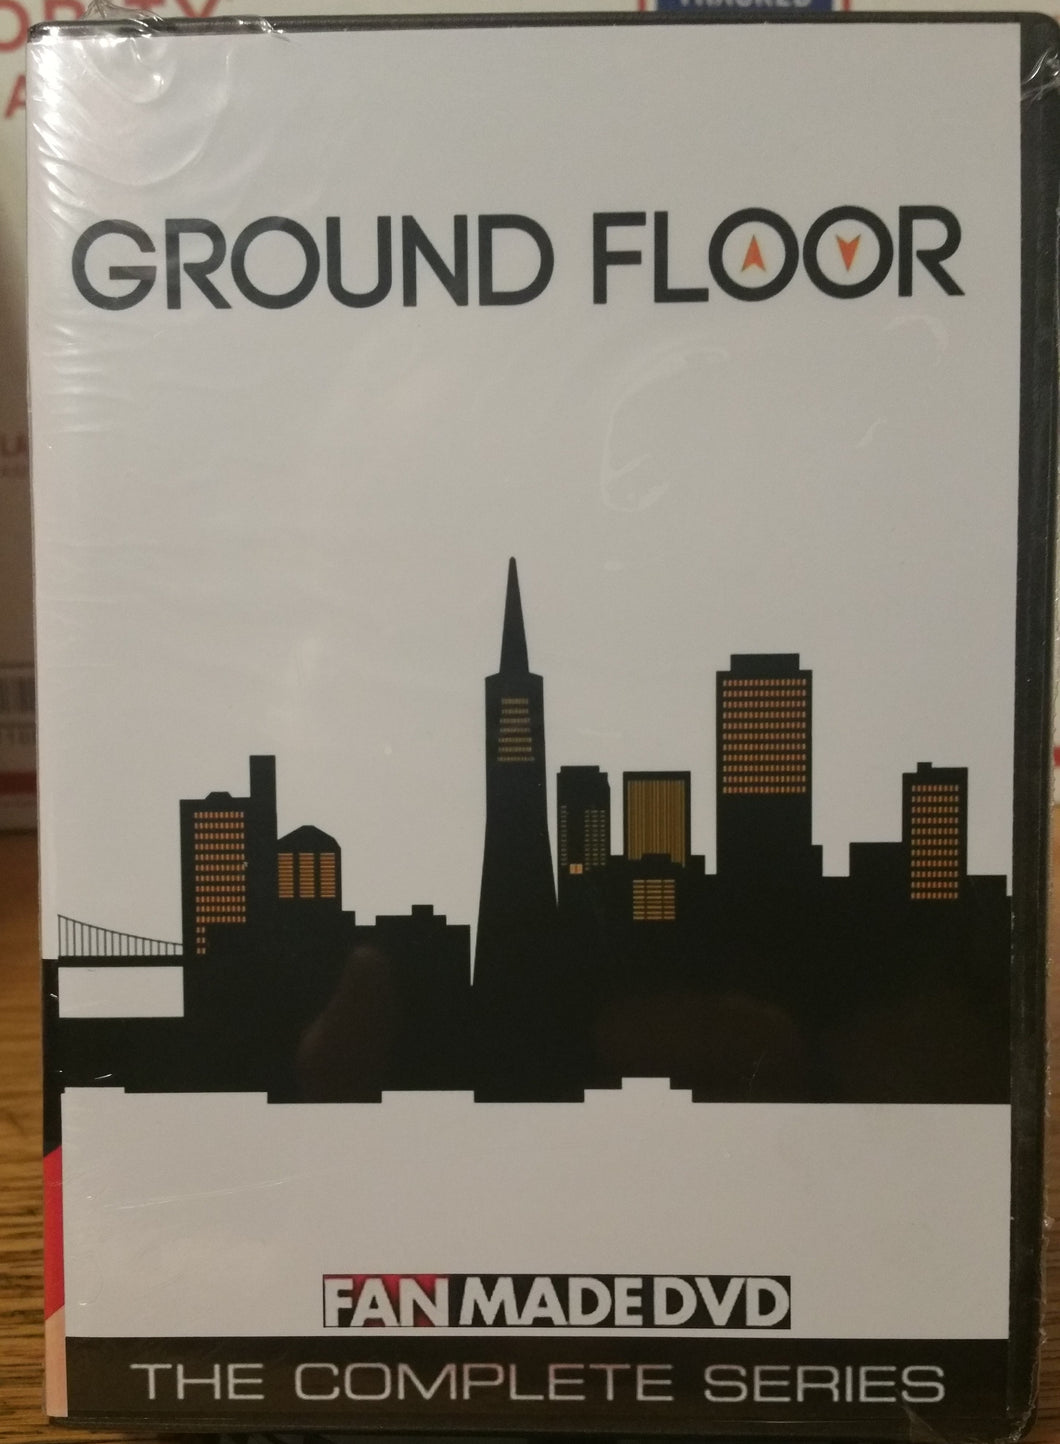 GROUND FLOOR (2013) THE COMPLETE TV SERIES 20 EPISODES ON 2 DVD'S Skylar Astin Briga Heelan John